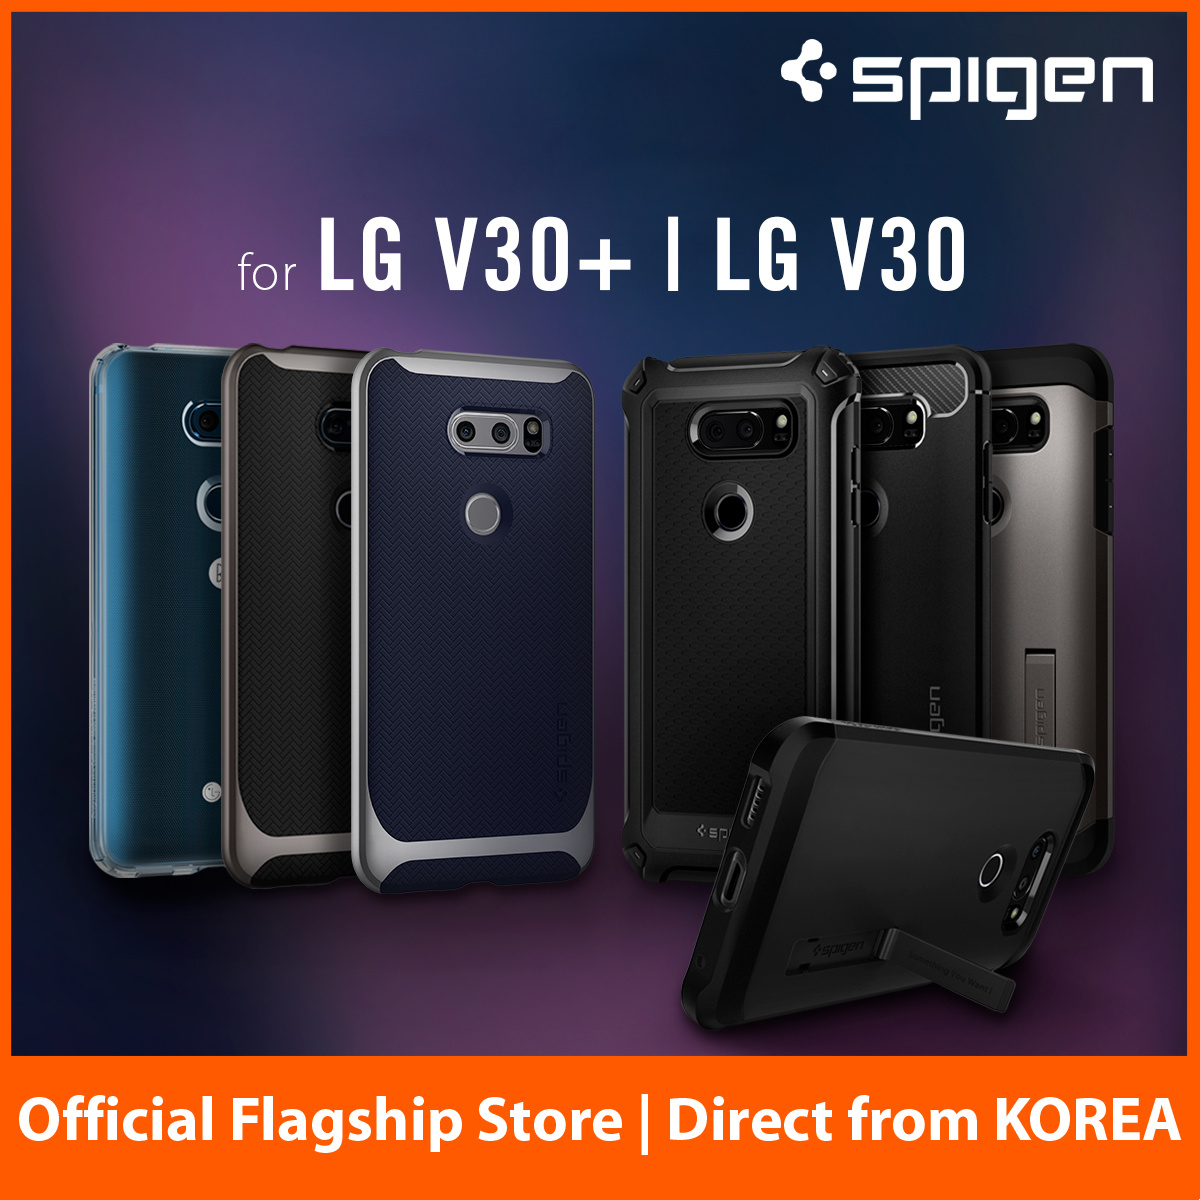 best service 1a52d 4636d SPIGENSpigen LG V30 Case Casing Cover Screen Protector Direct from Korea  Fast Free Local Delivery